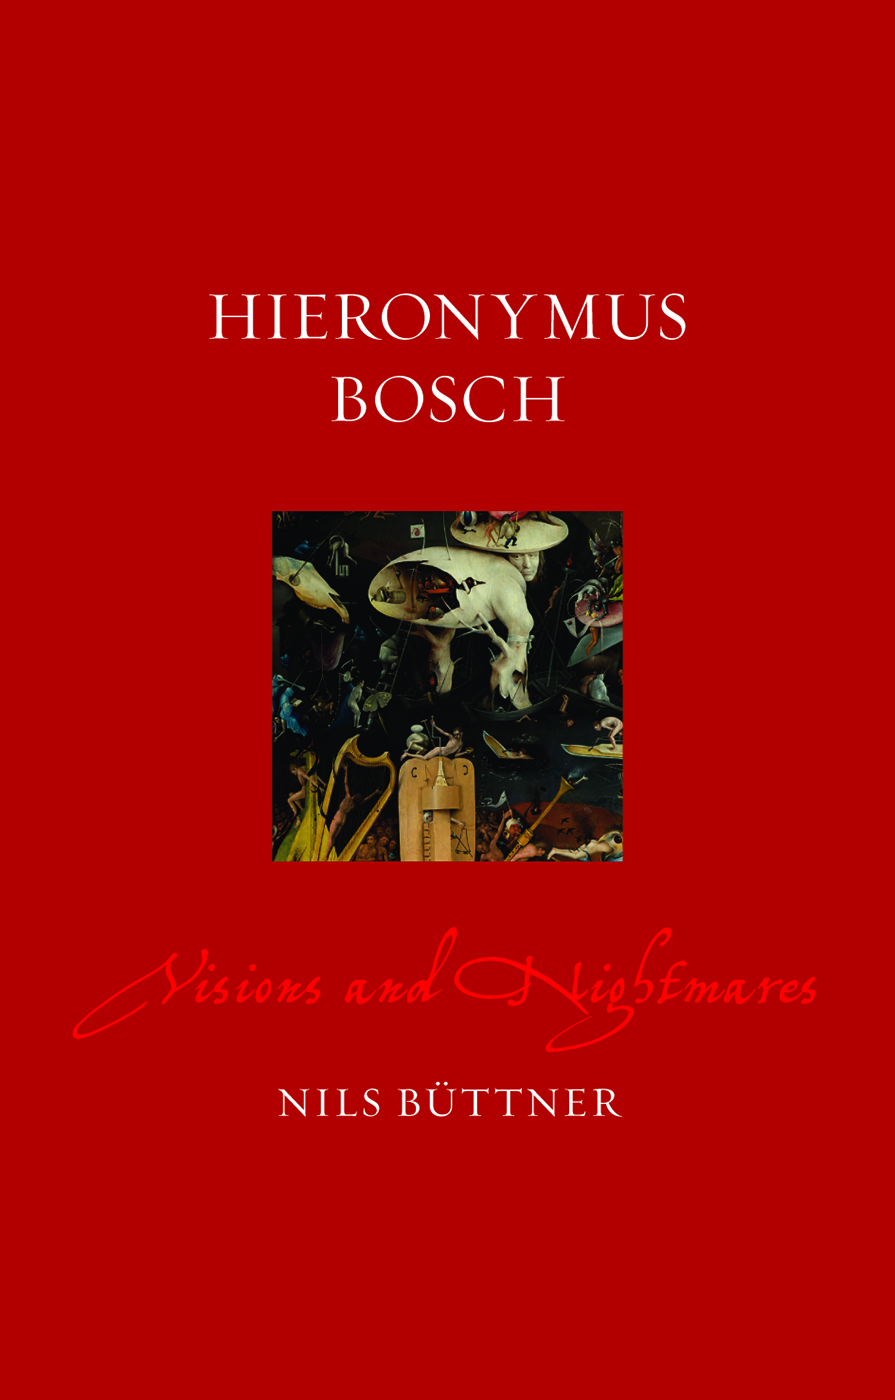 Hieronymus Bosch_cover_72